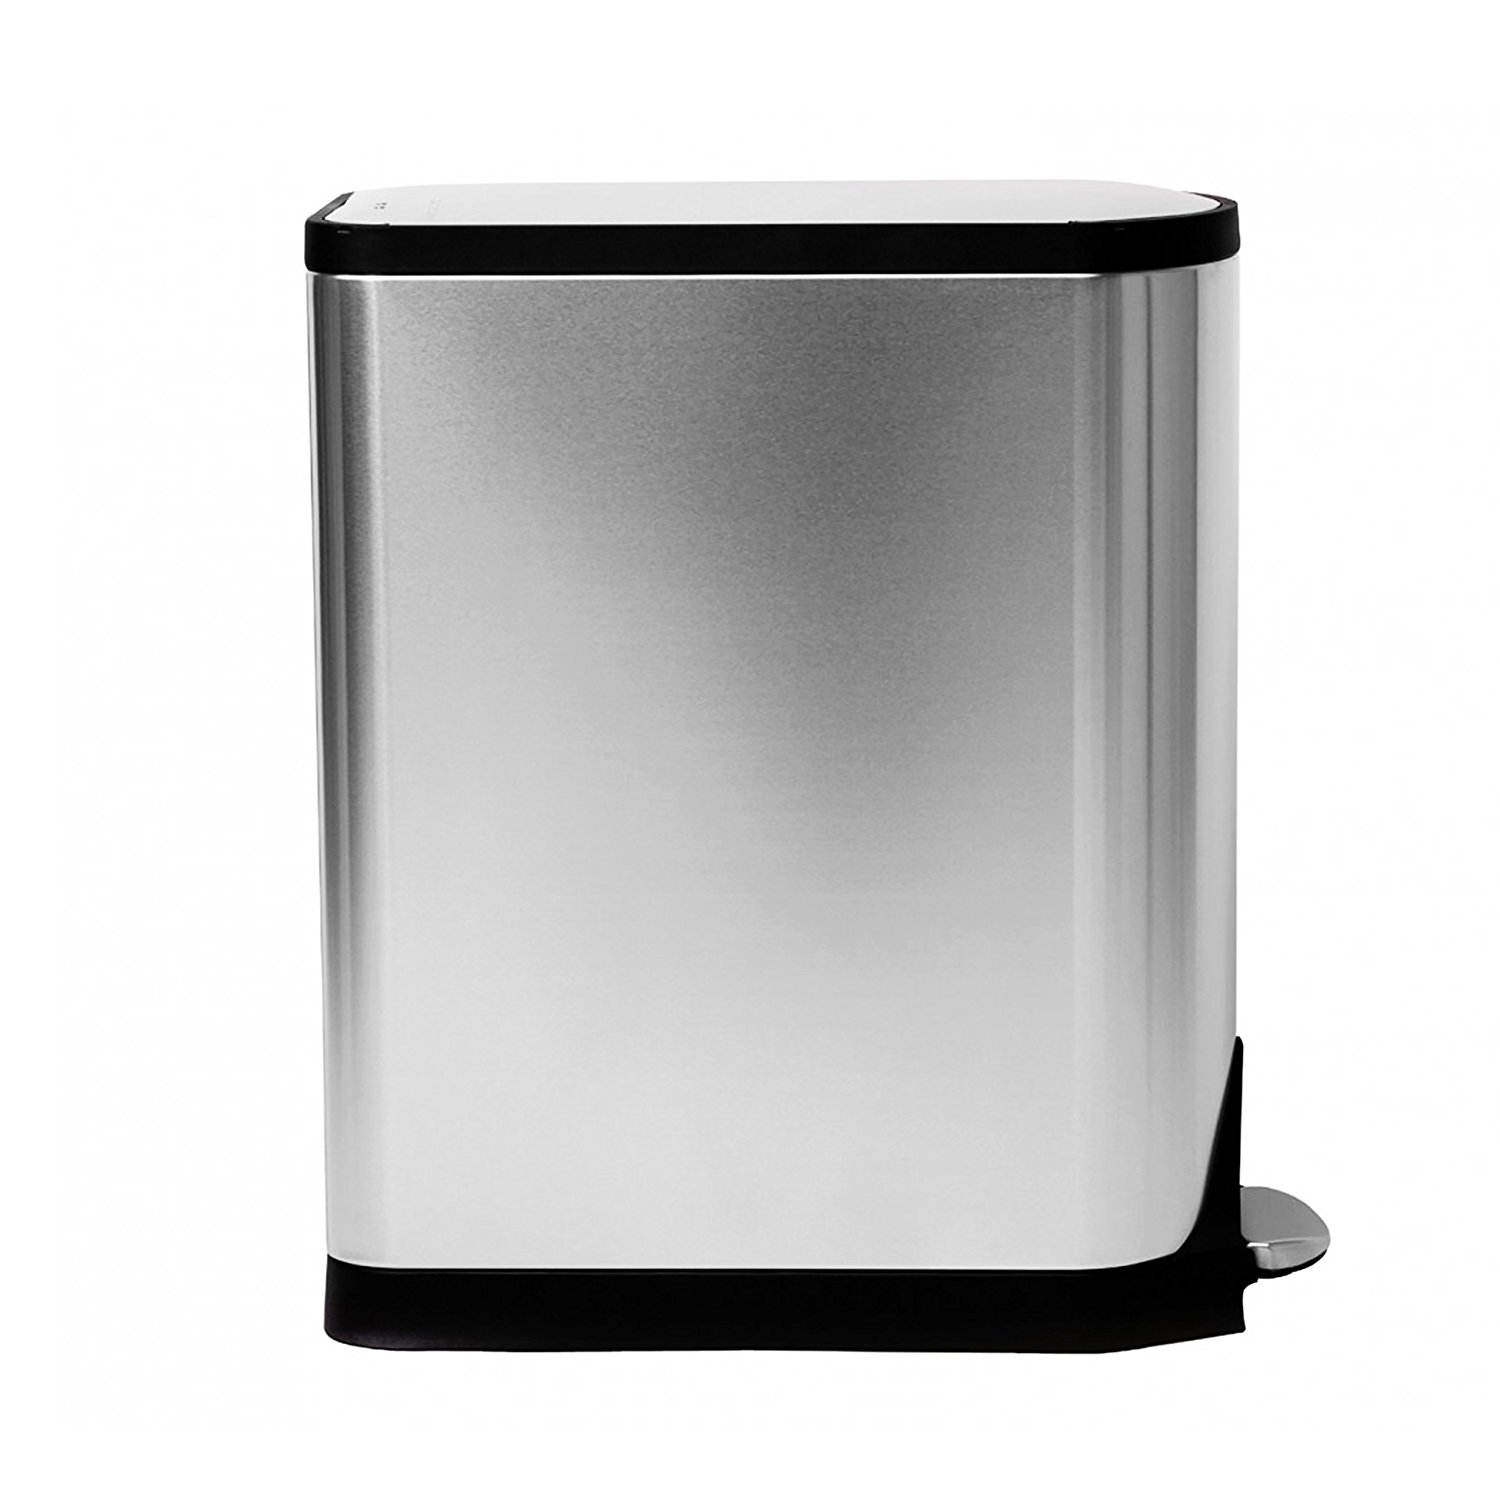 Simplehuman Recycler | Simplehuman Trash and Recycle Can | Simplehuman Recycle